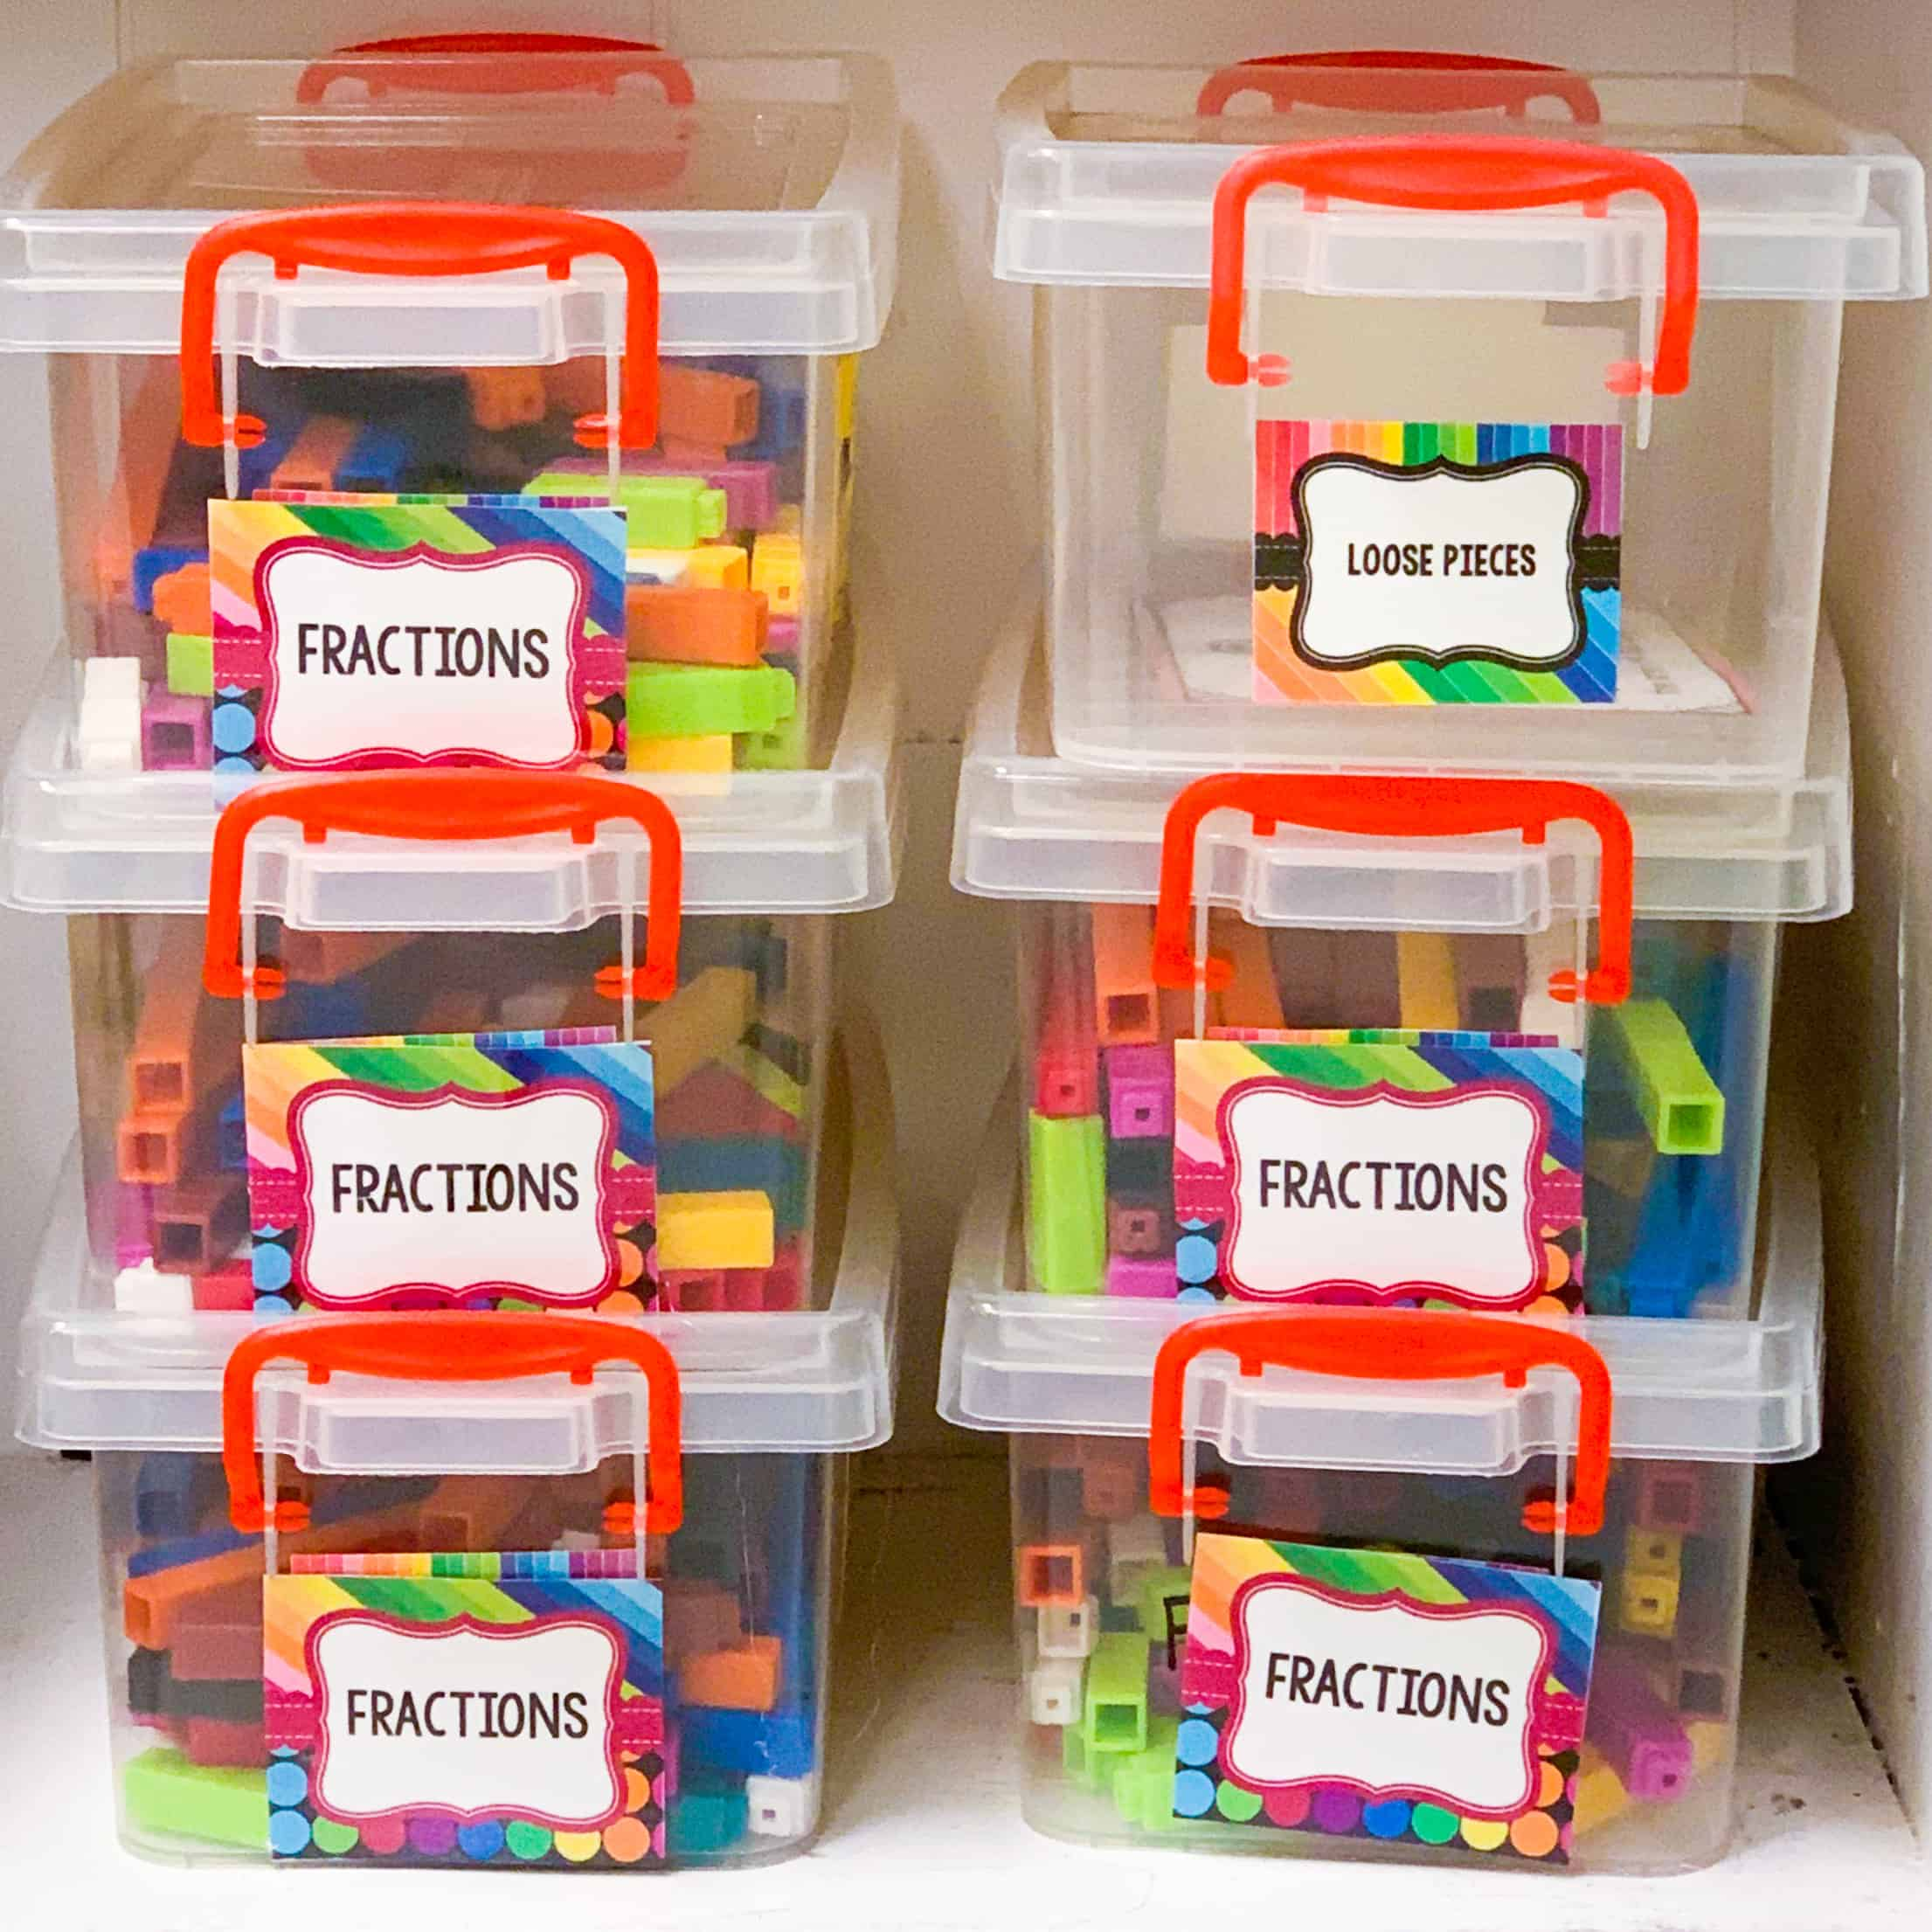 Six clear plastic containers, each containing different colorful math manipulative tools